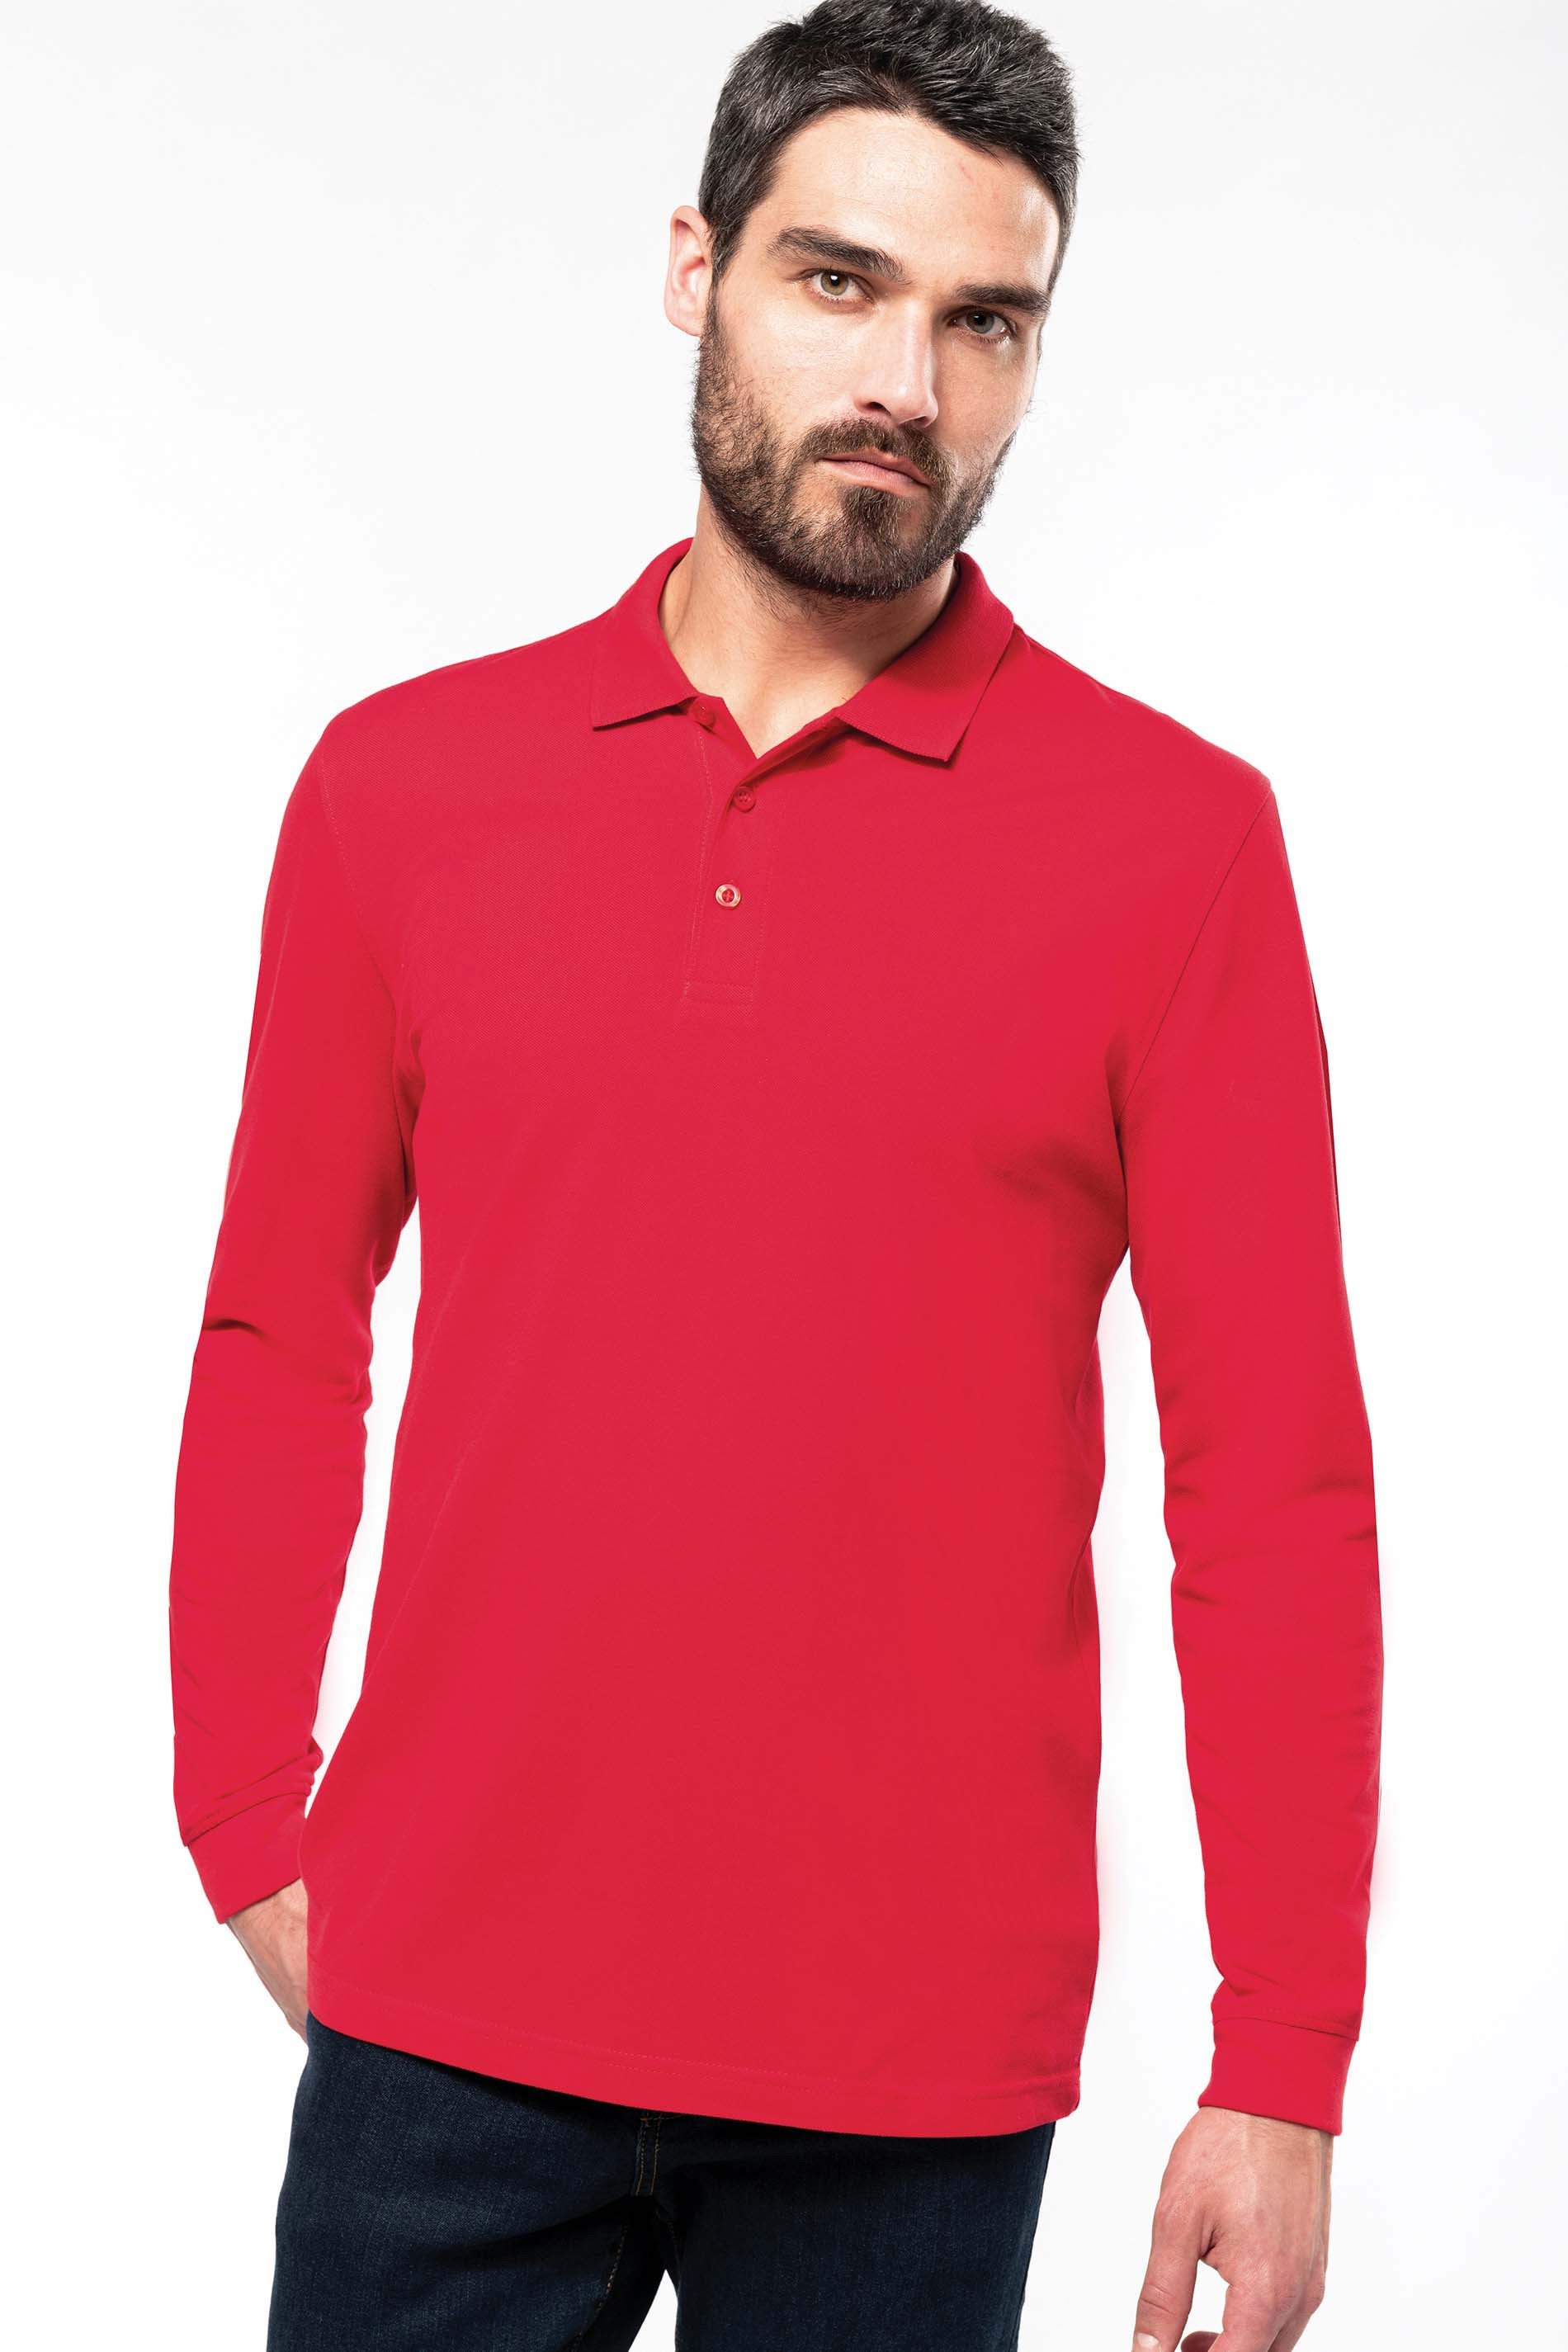 Polo maille piquée manches longues homme